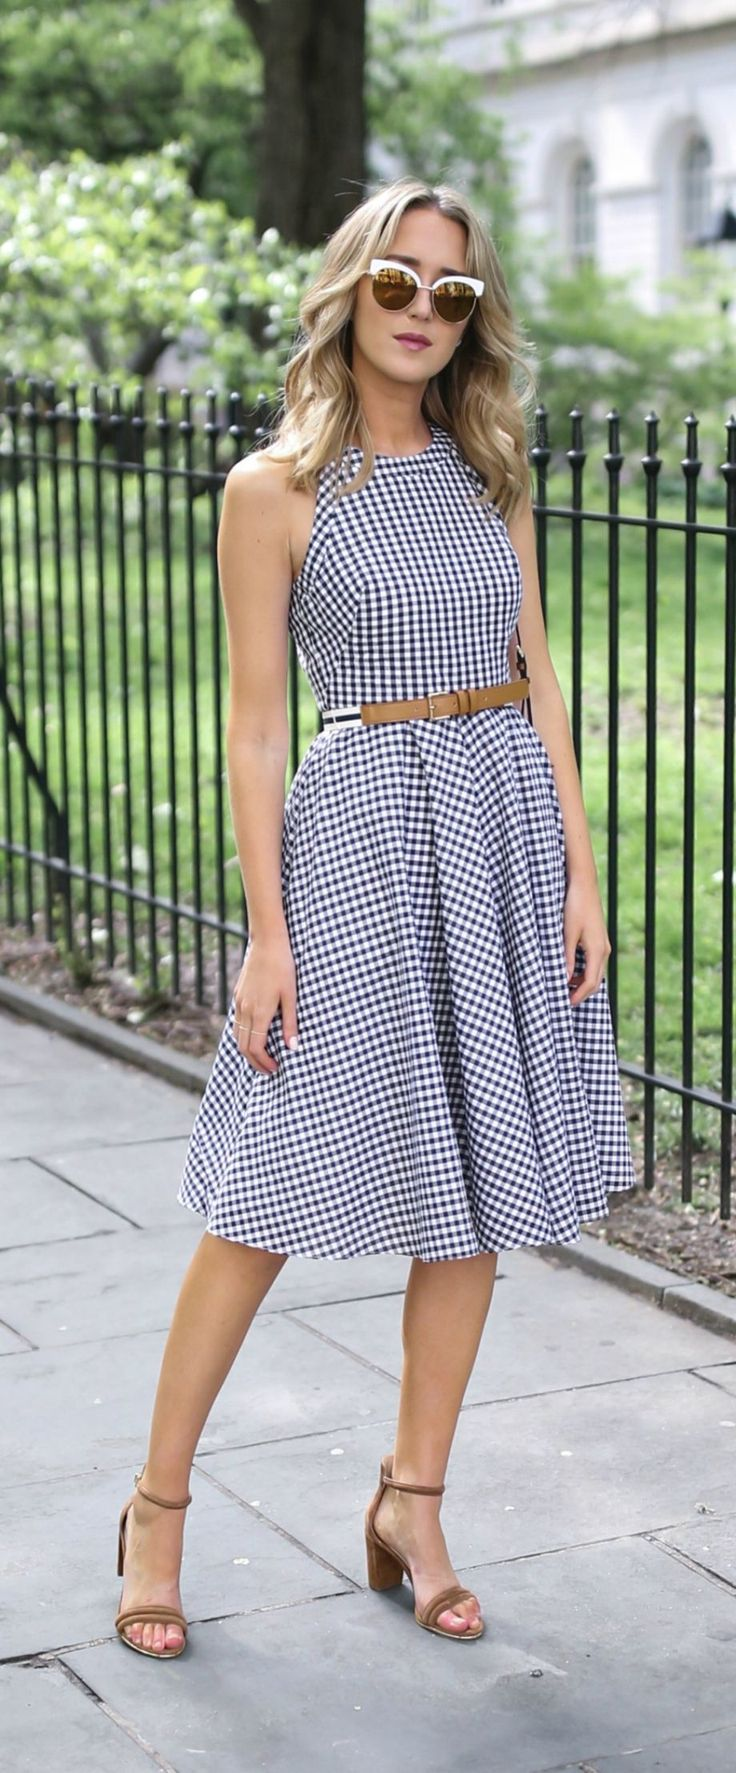 Awesome 100 Vintage Midi Dress to Wear Right Now from https://www.fashionetter.com/2017/07/19/100-vintage-midi-dress-wear-right-now/